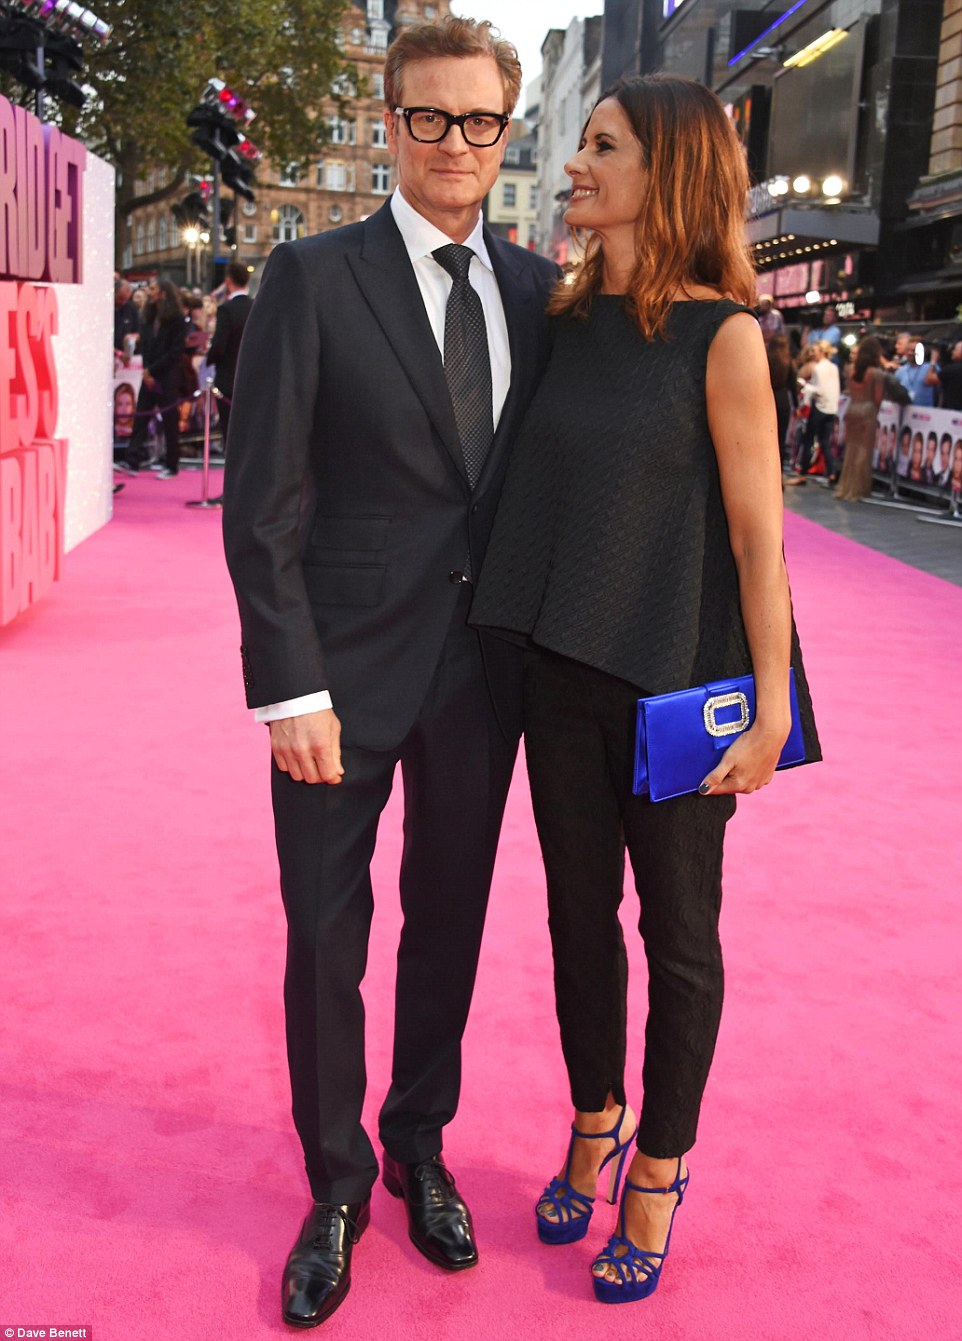 The look of love: Livia gazed adoringly at her husband Colin Firth as they made their way across the pink carpet